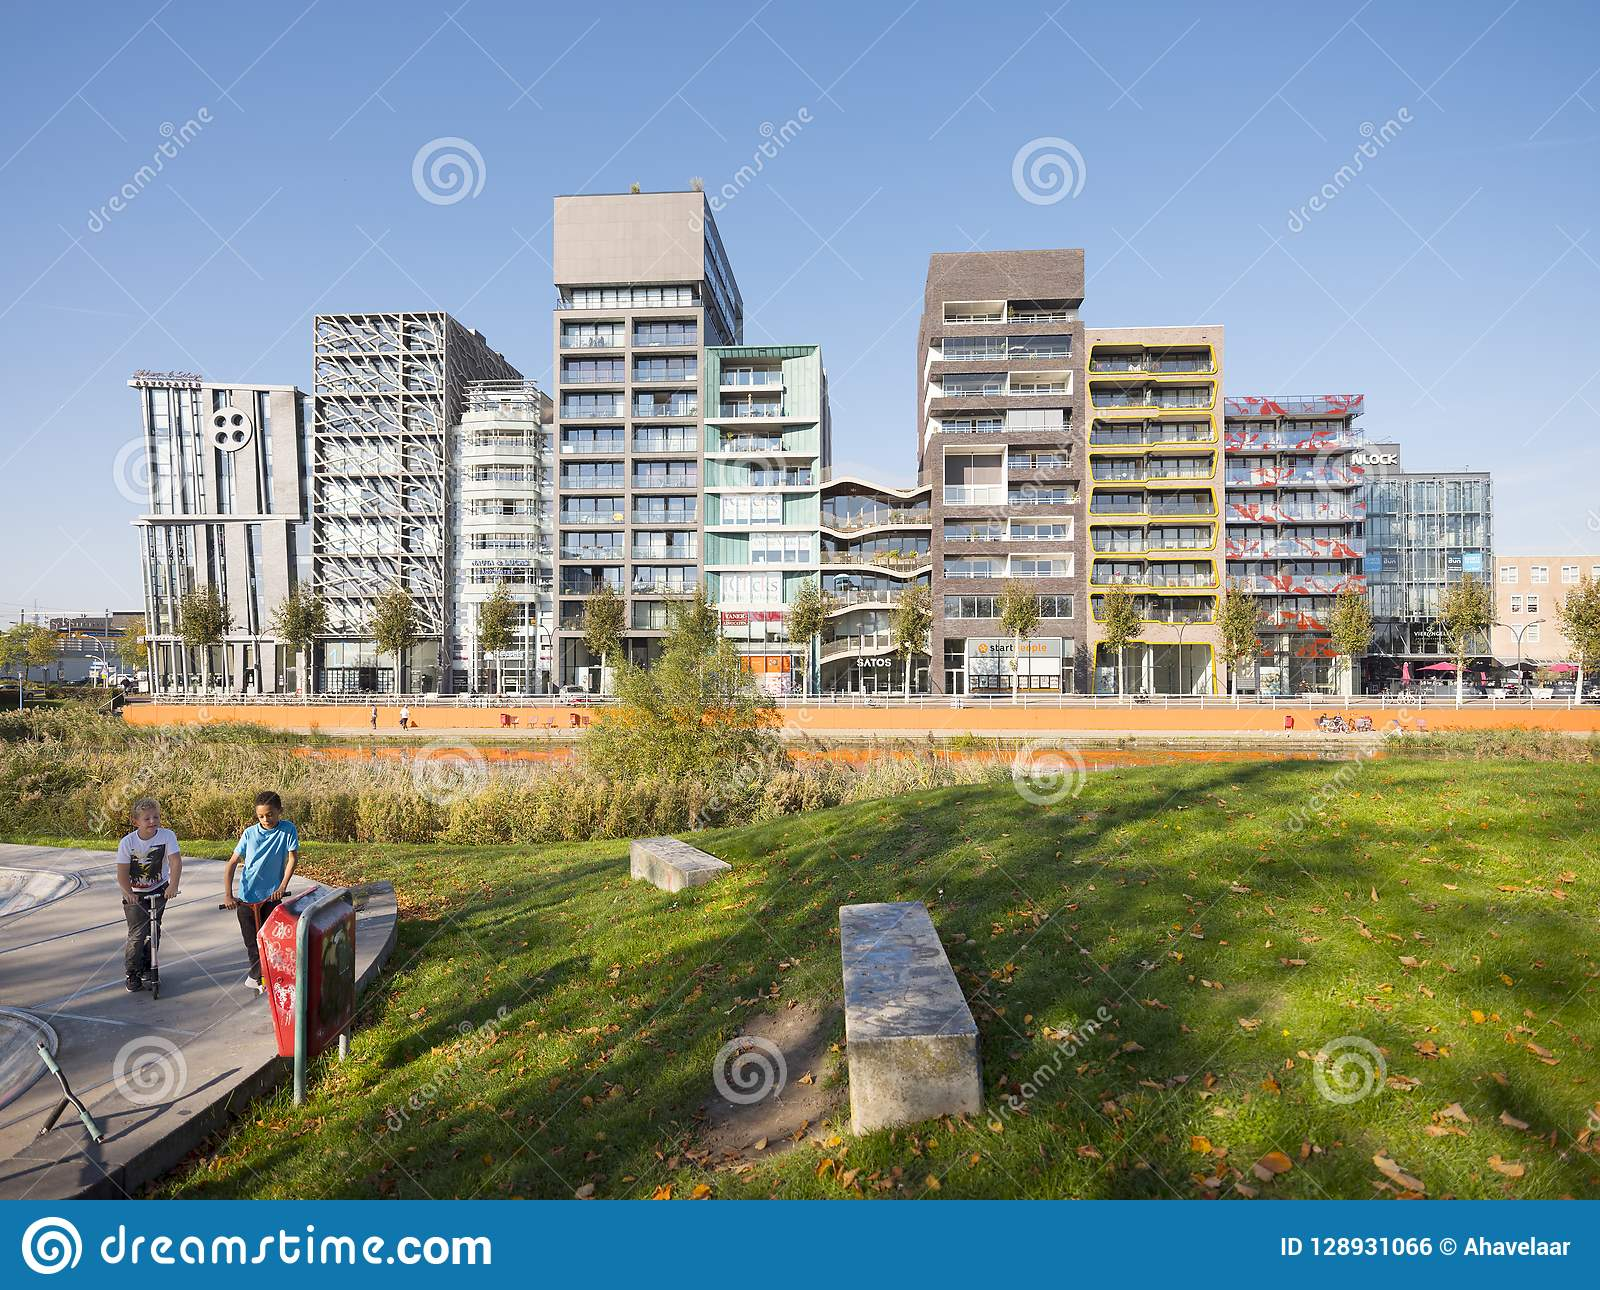 Lelystad, Netherlands, 10 oktober 2018: modern architecture in dutch city  lelystad capital of flevoland in the netherlands and young boys with  scooters